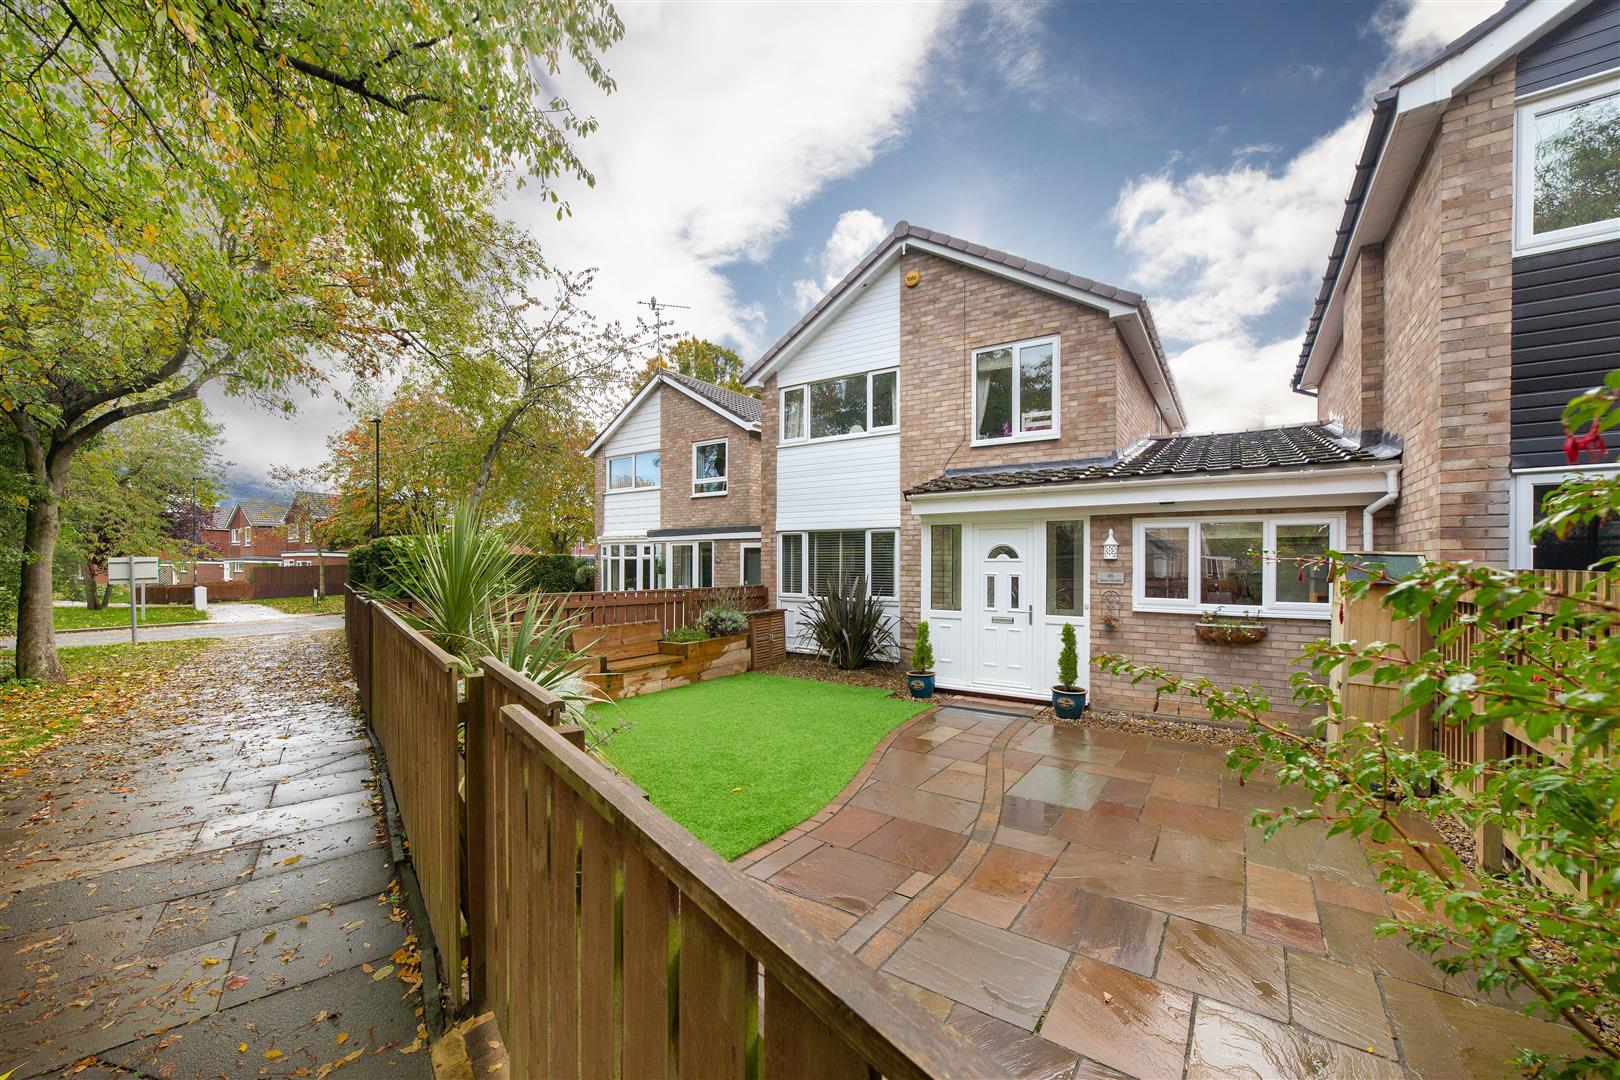 3 bed detached house for sale in Newcastle Upon Tyne, NE3 2XA  - Property Image 1